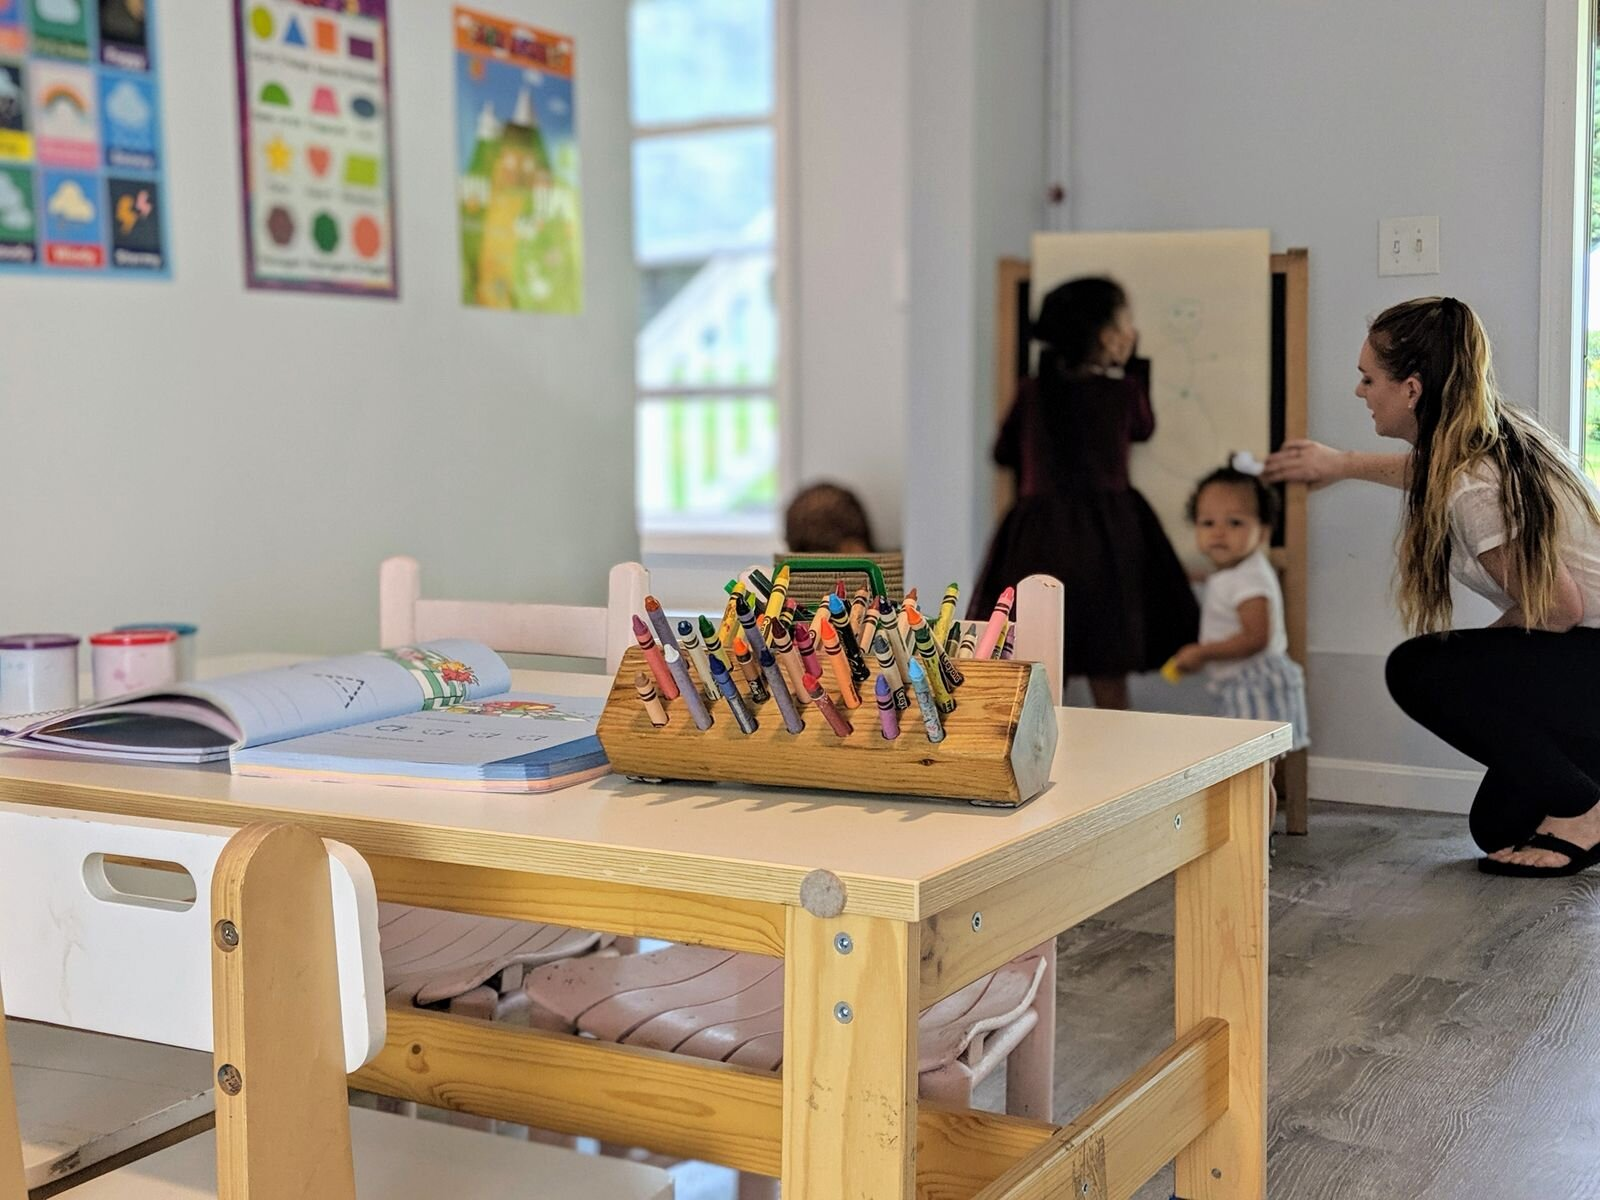 Ms. Lauren plays with the children at her new daycare in Leominster